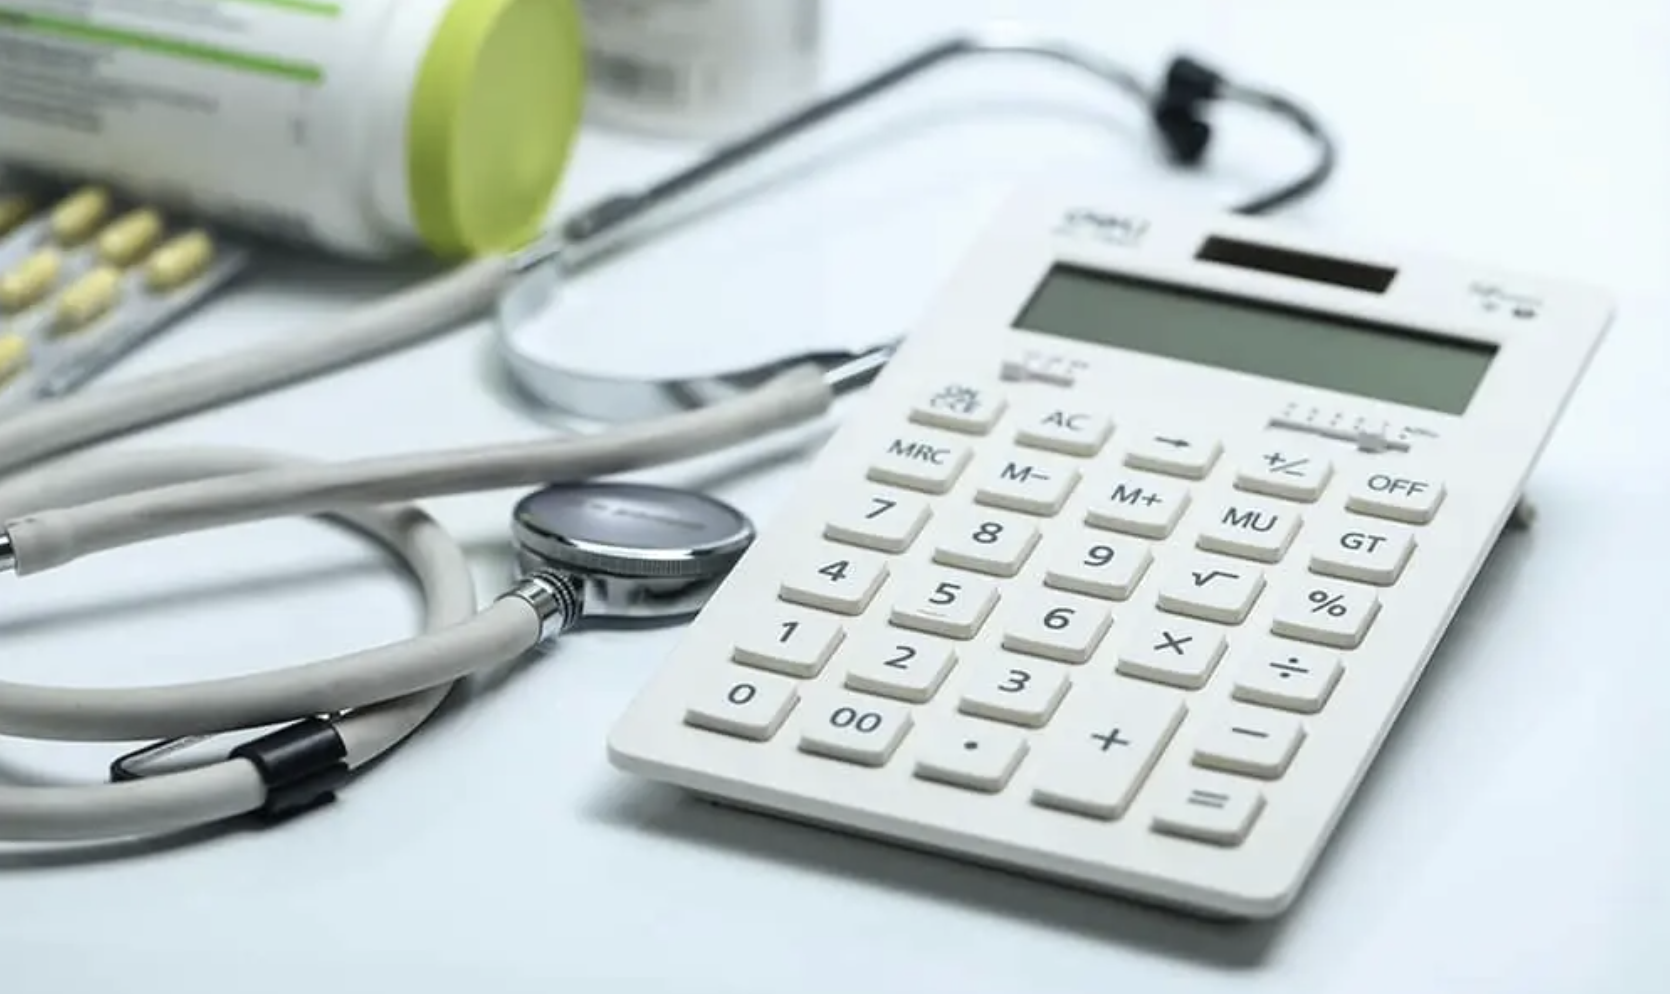 Medical Accounting: The Role Of Finance In HealthCare